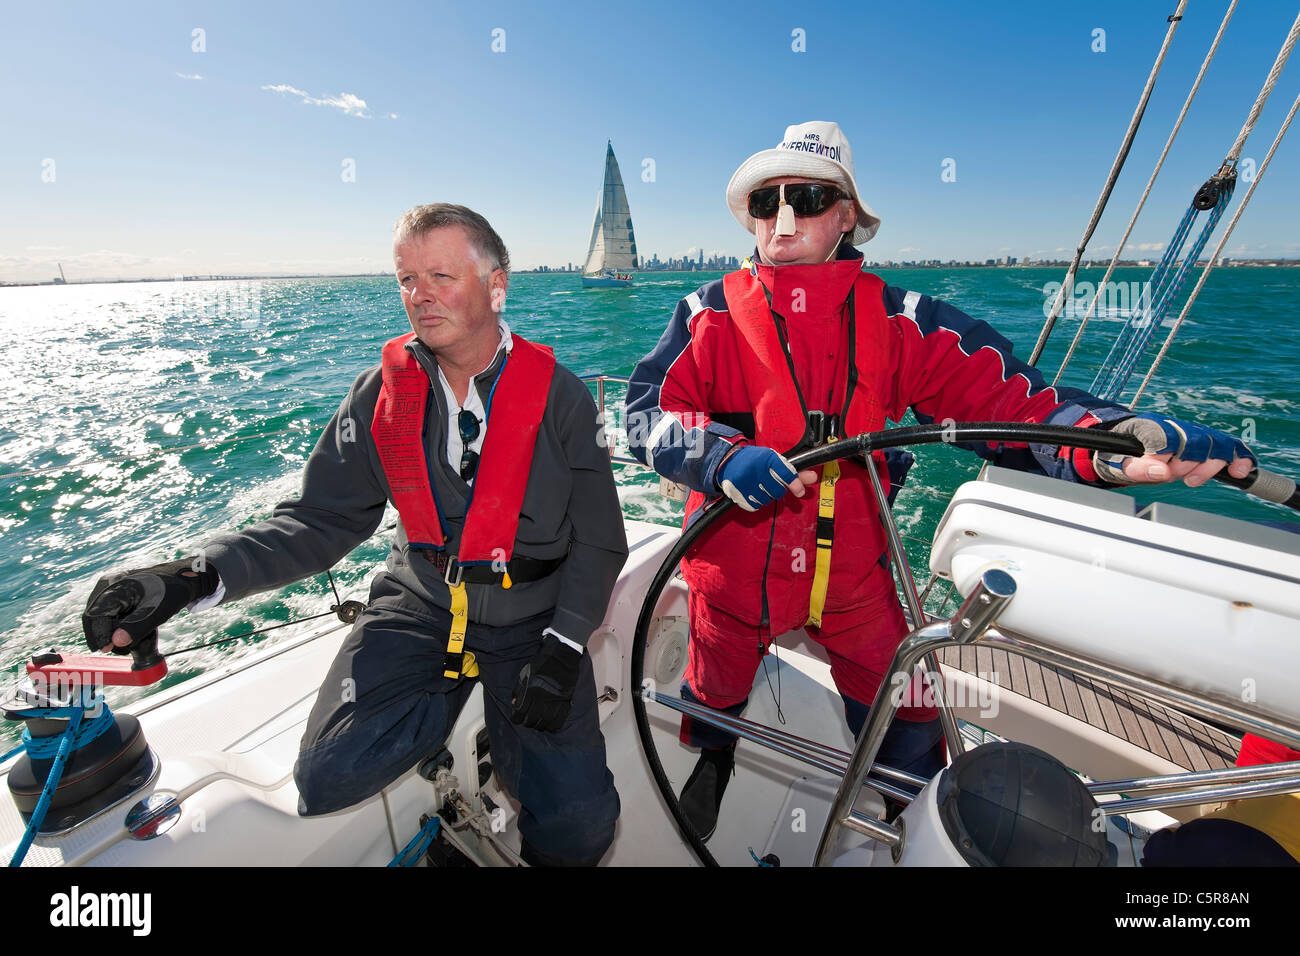 The captain is steering an Ocean going yacht. - Stock Image